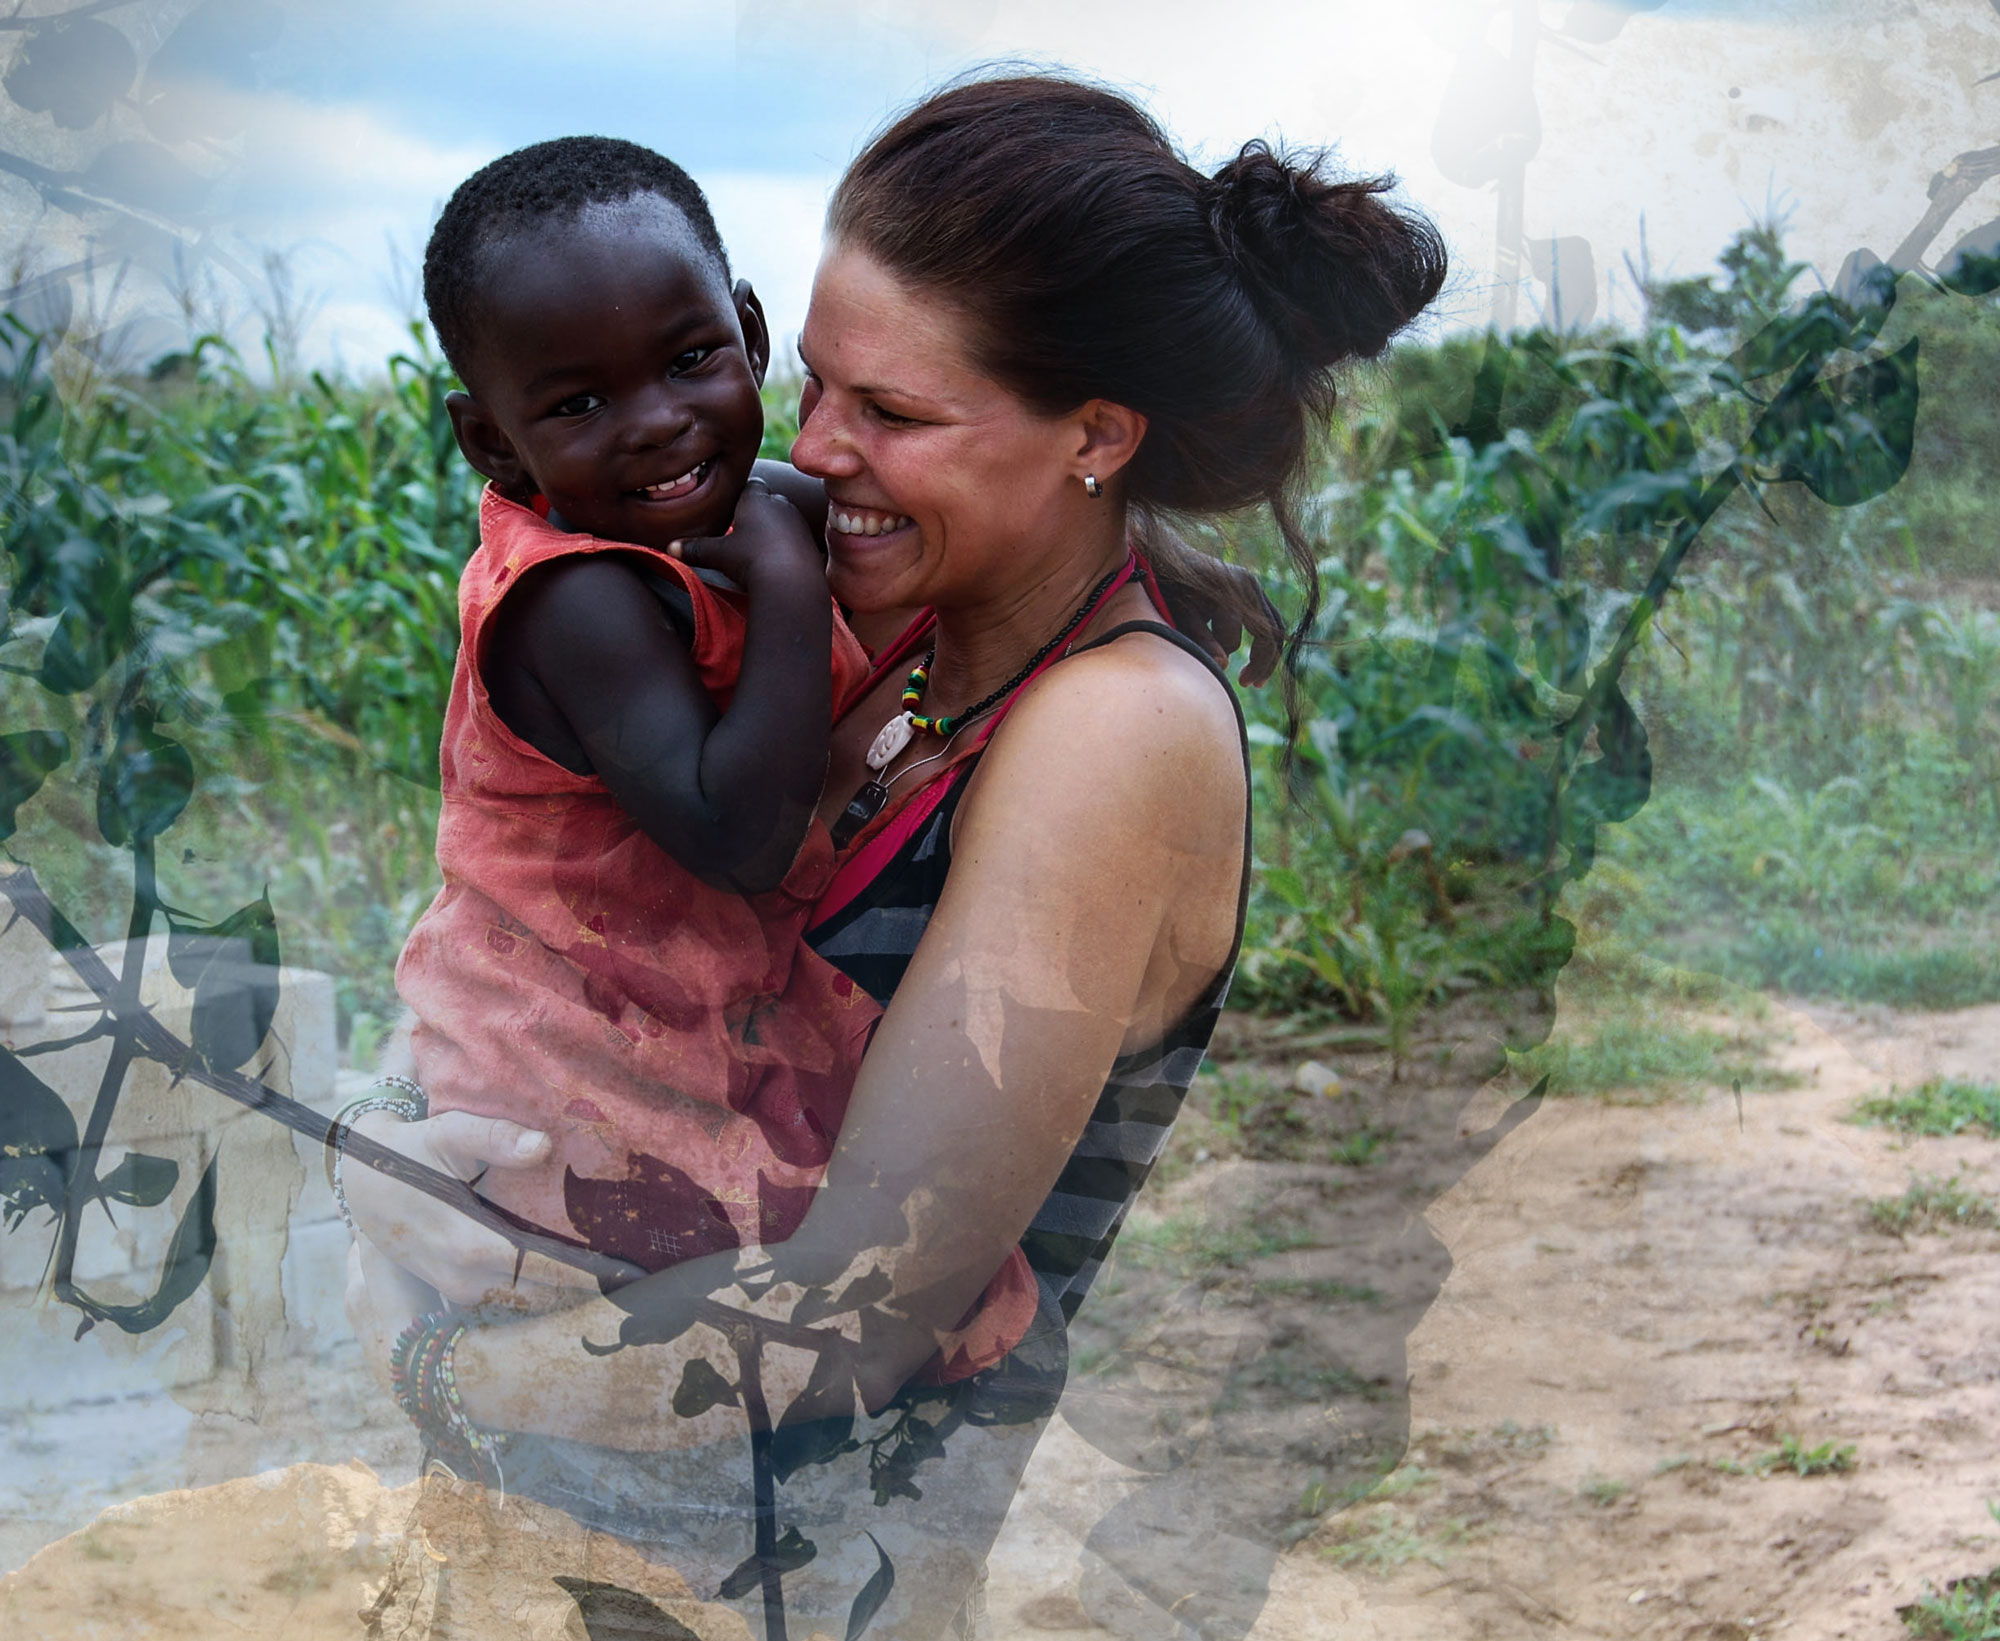 Love Life is an important non profit organisation registered in Sweden, founded by our incredible friend & power woman Jenni Lindberg. This organisation supports children in need in Ghana, by investing in self-sustainable projects. -